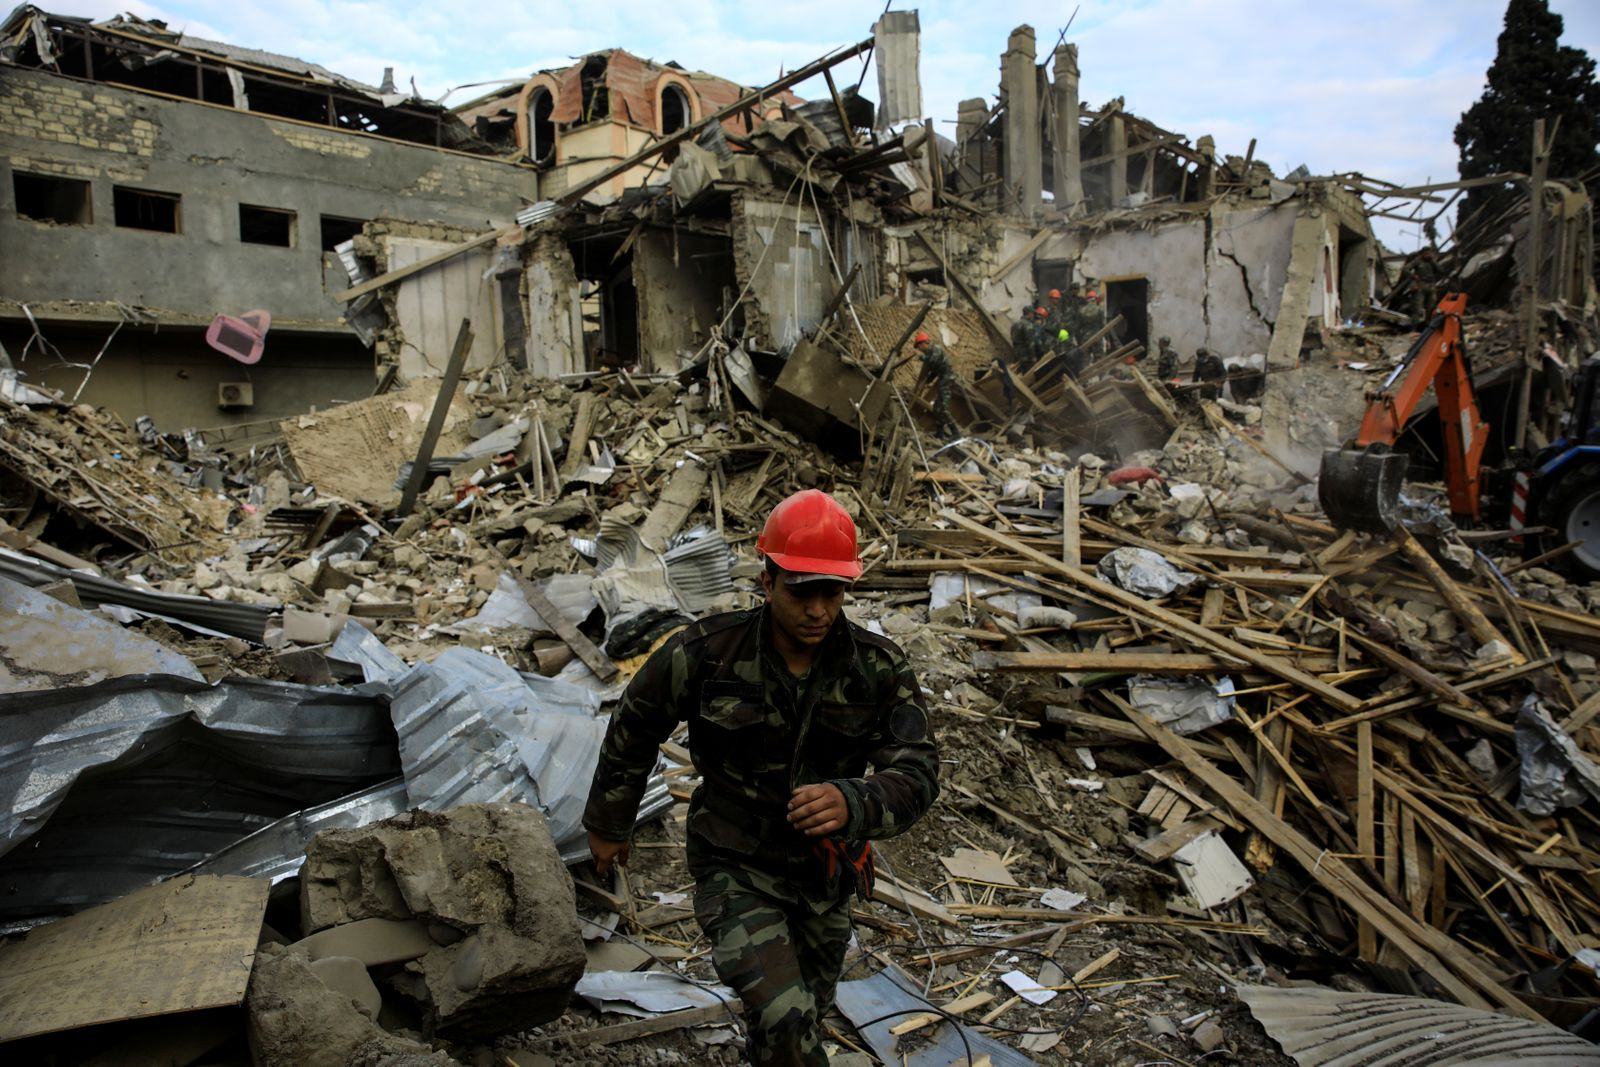 Search and rescue teams work on the blast site hit by a rocket during the fighting over the breakaway region of Nagorno-Karabakh in the city of Ganja